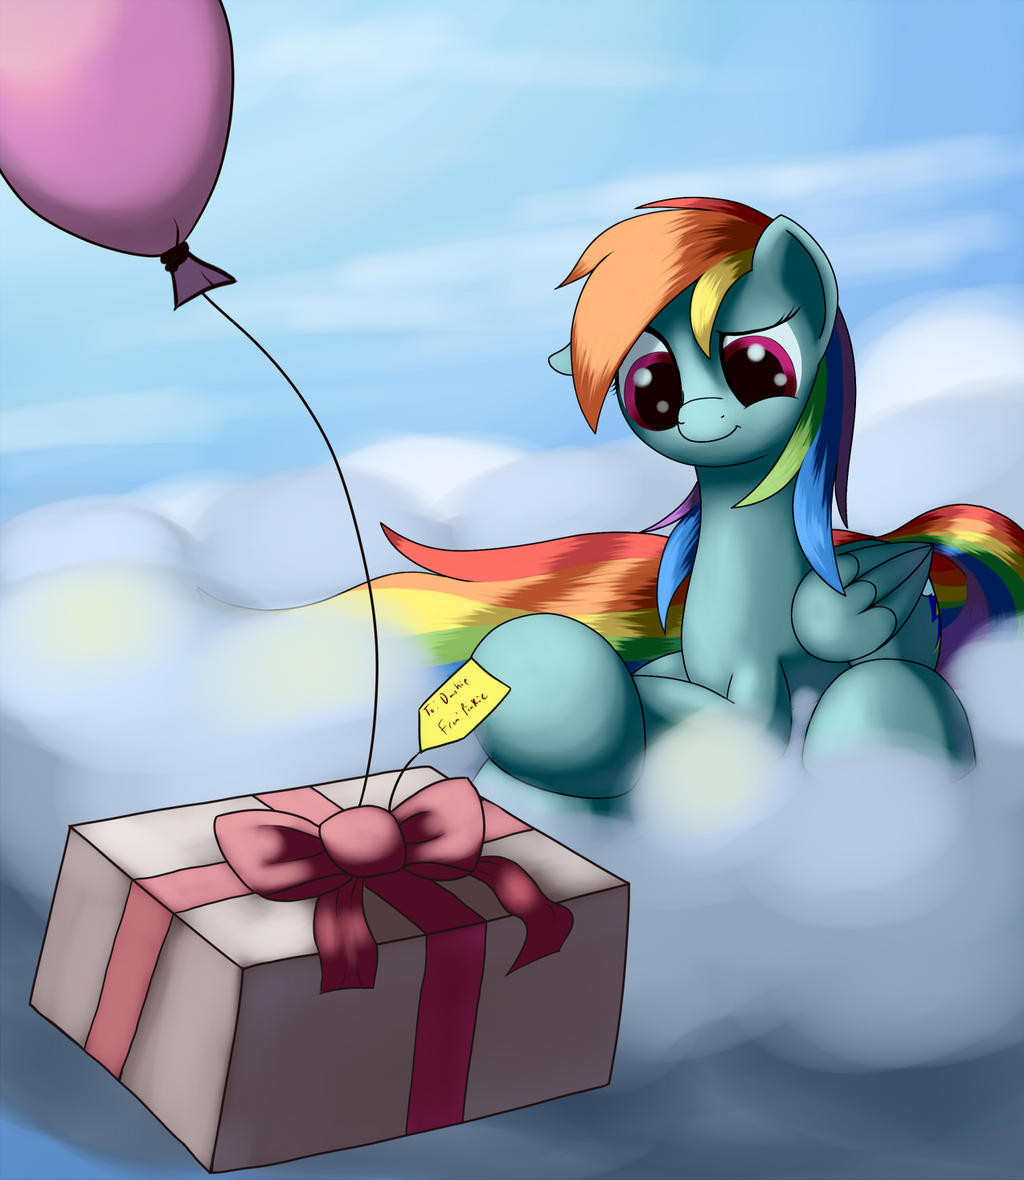 Air Mail by Grennadder